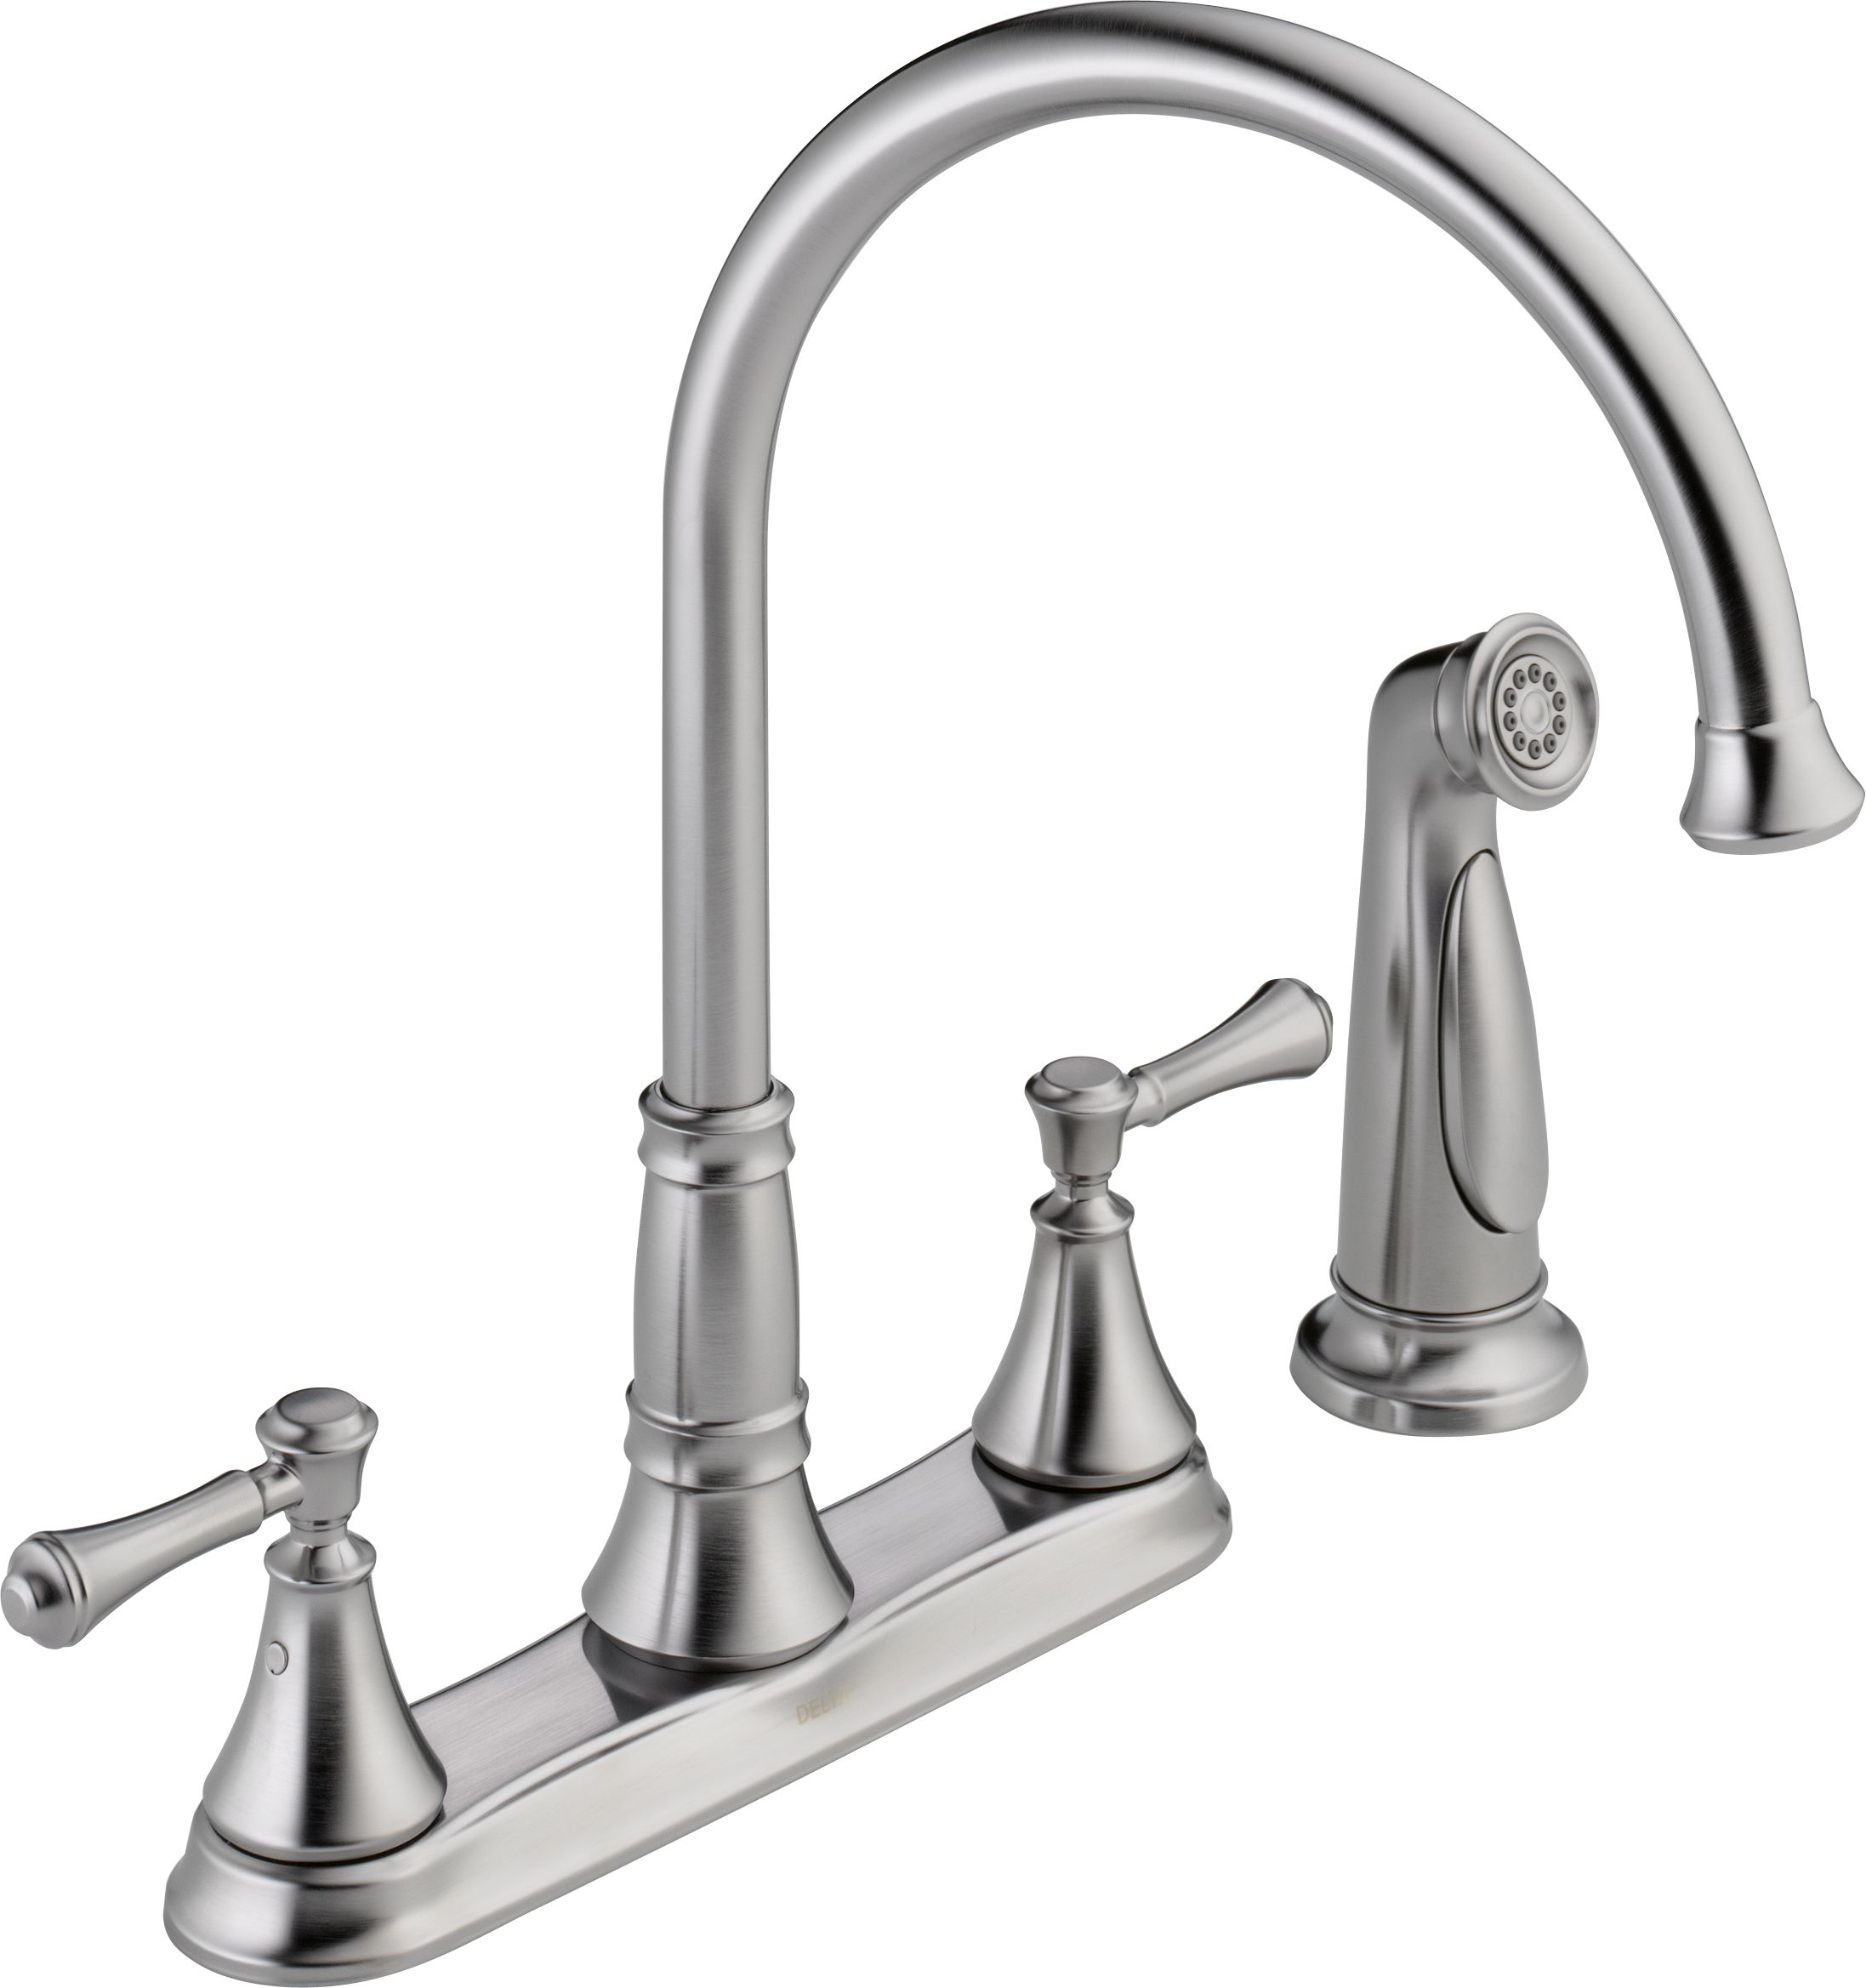 metal lowes with faucets brass delta faucet chrome sink best image handle centerset double bathroom